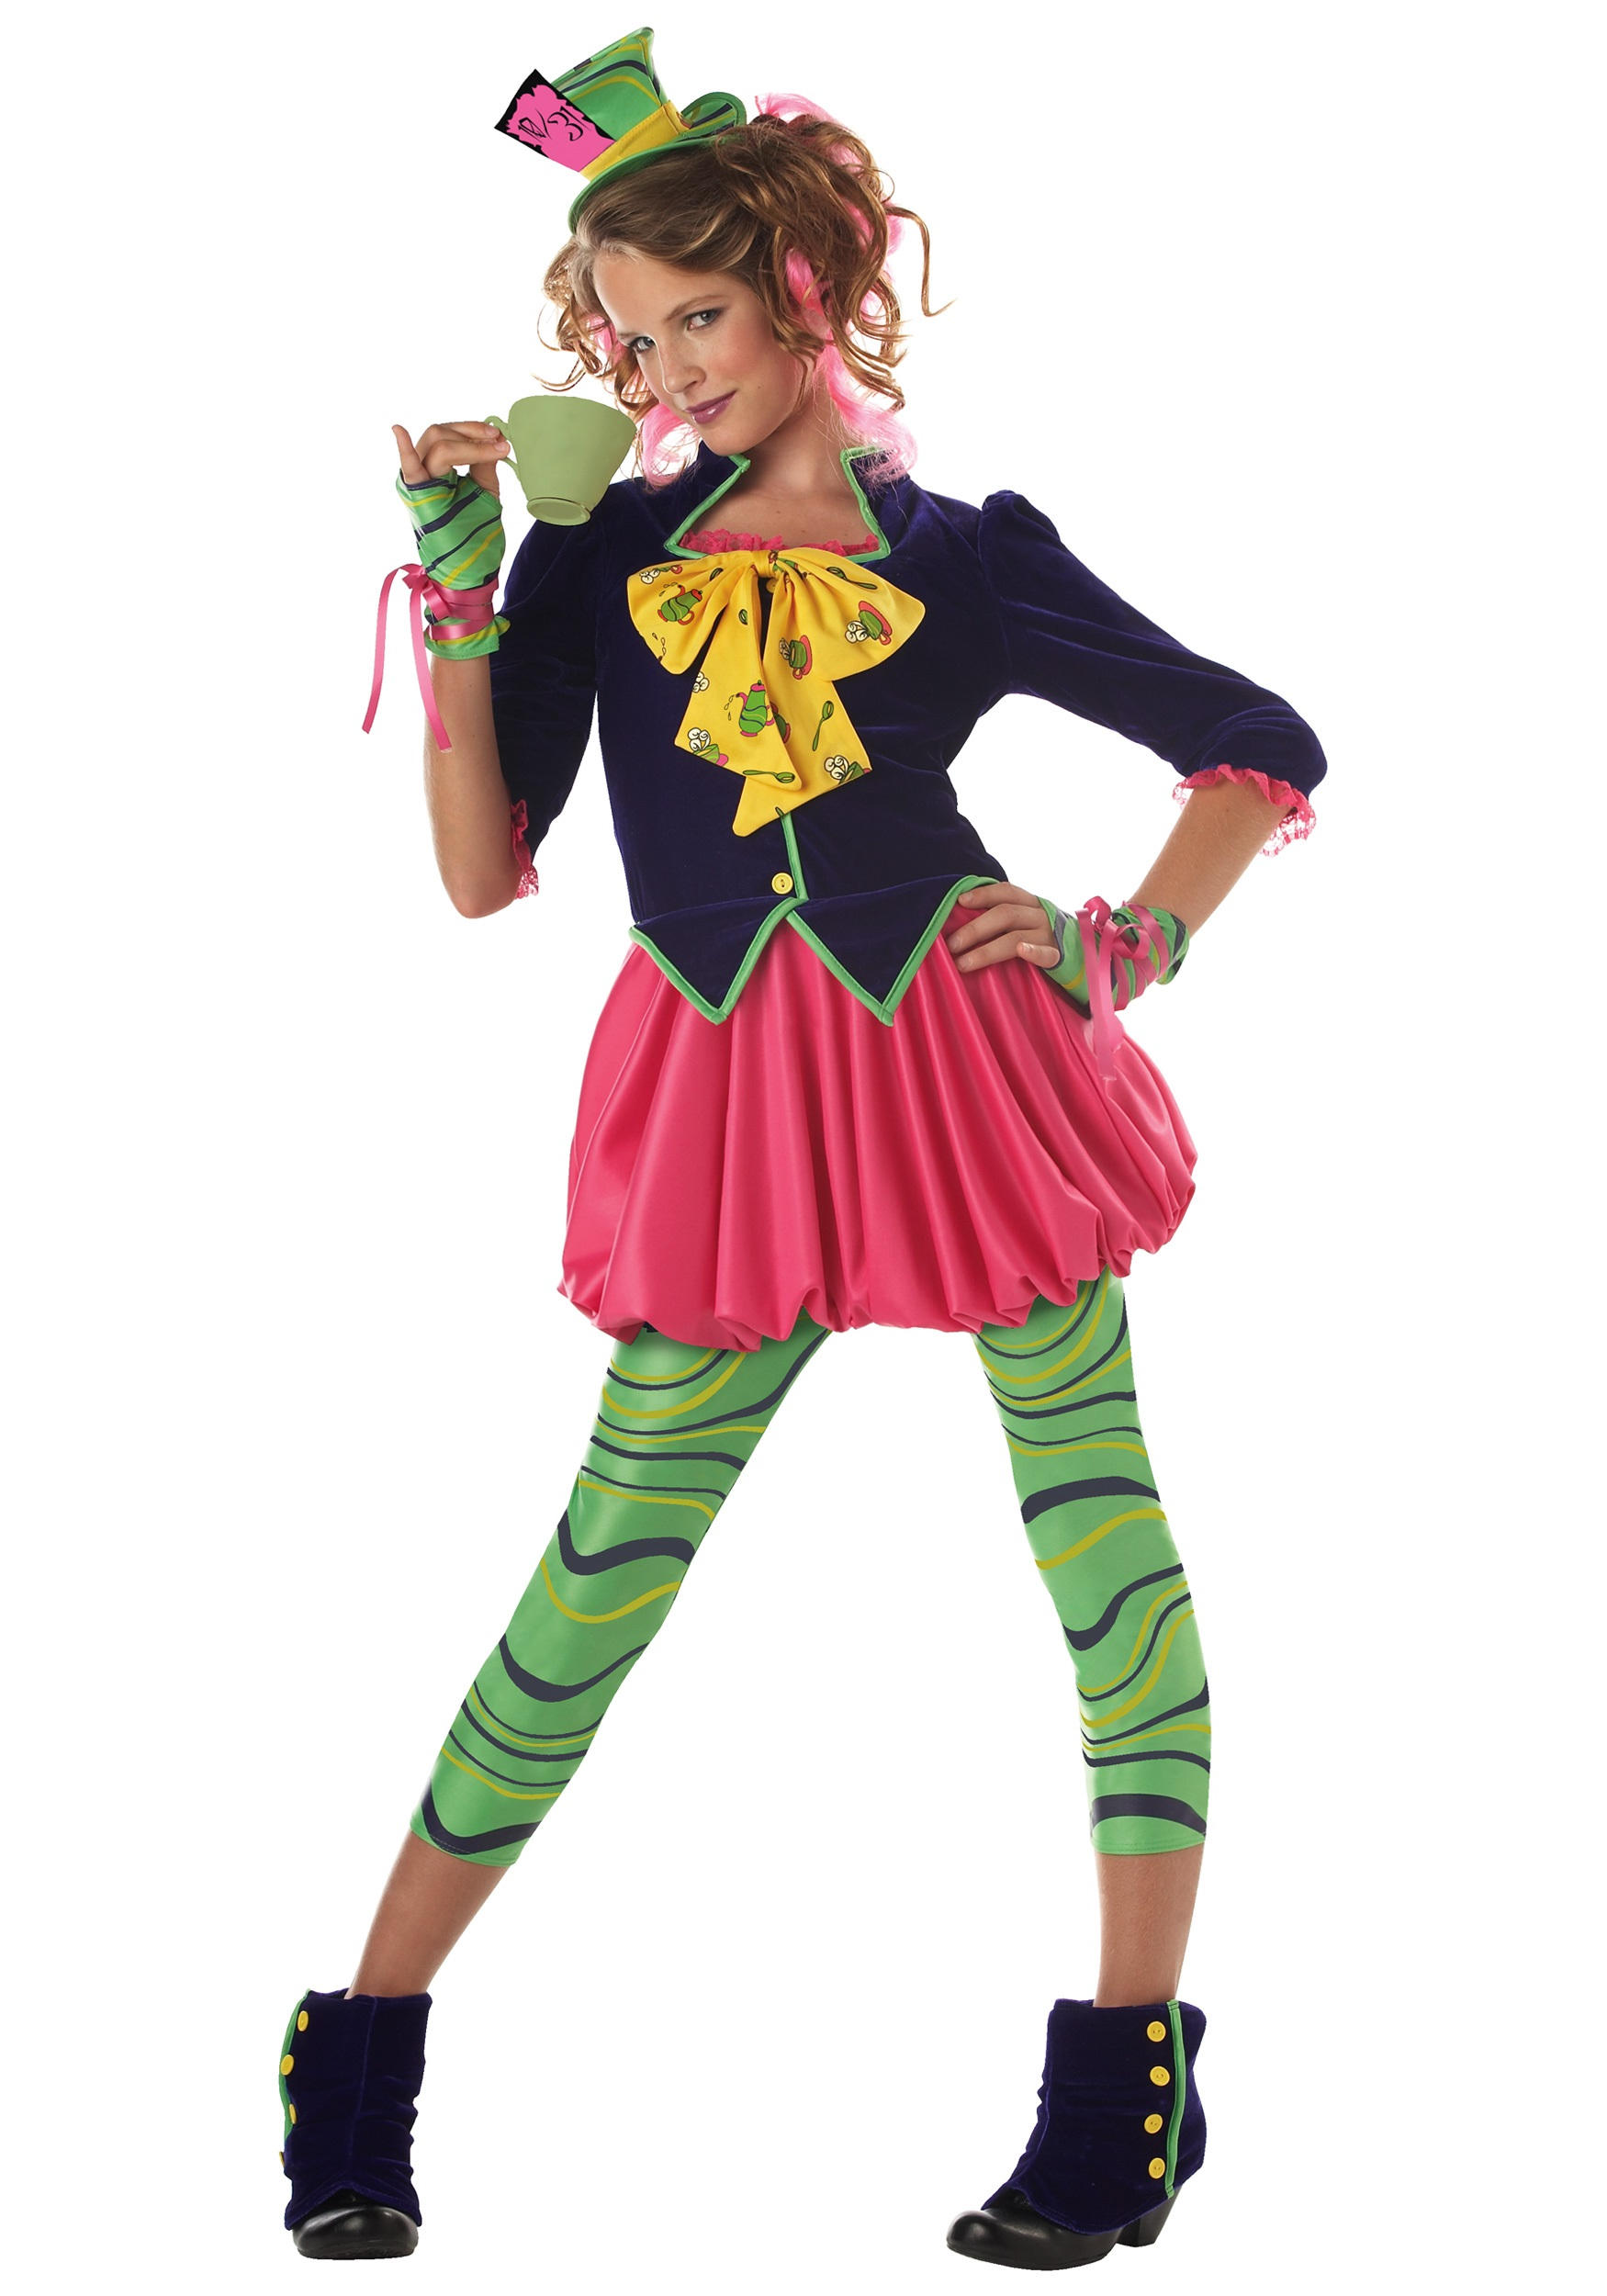 Alice In Wonderland Costumes For Kids - HalloweenCostumes.com